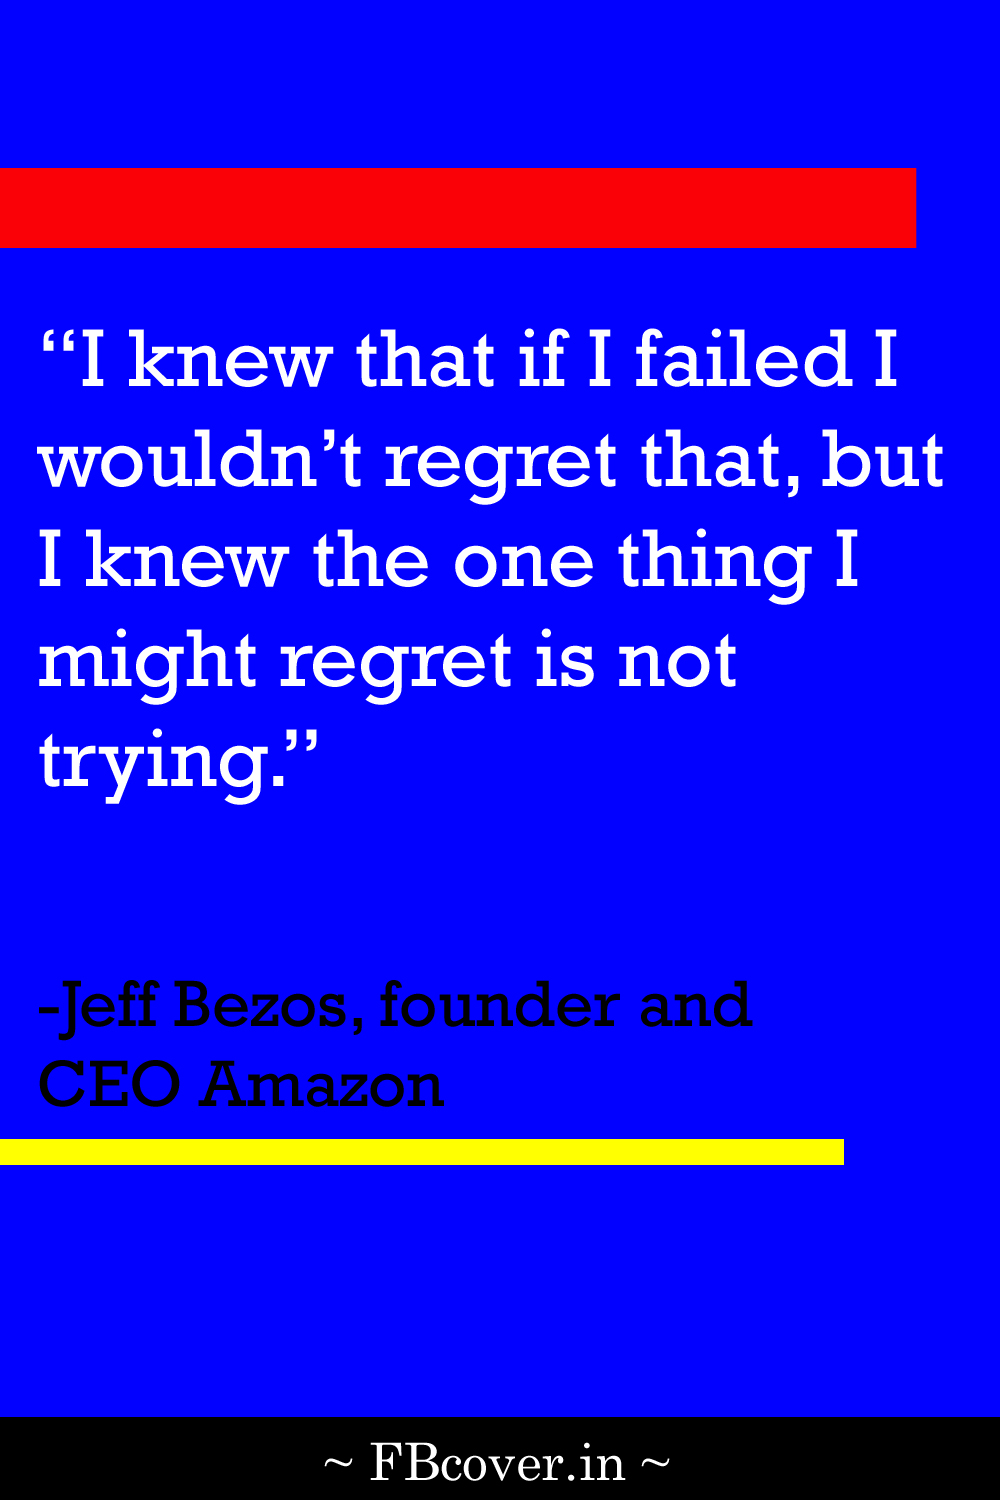 """Jeff Bezos Quotes: """"I knew that if I failed I wouldn't regret that, but I knew the one thing I might regret is not trying."""""""